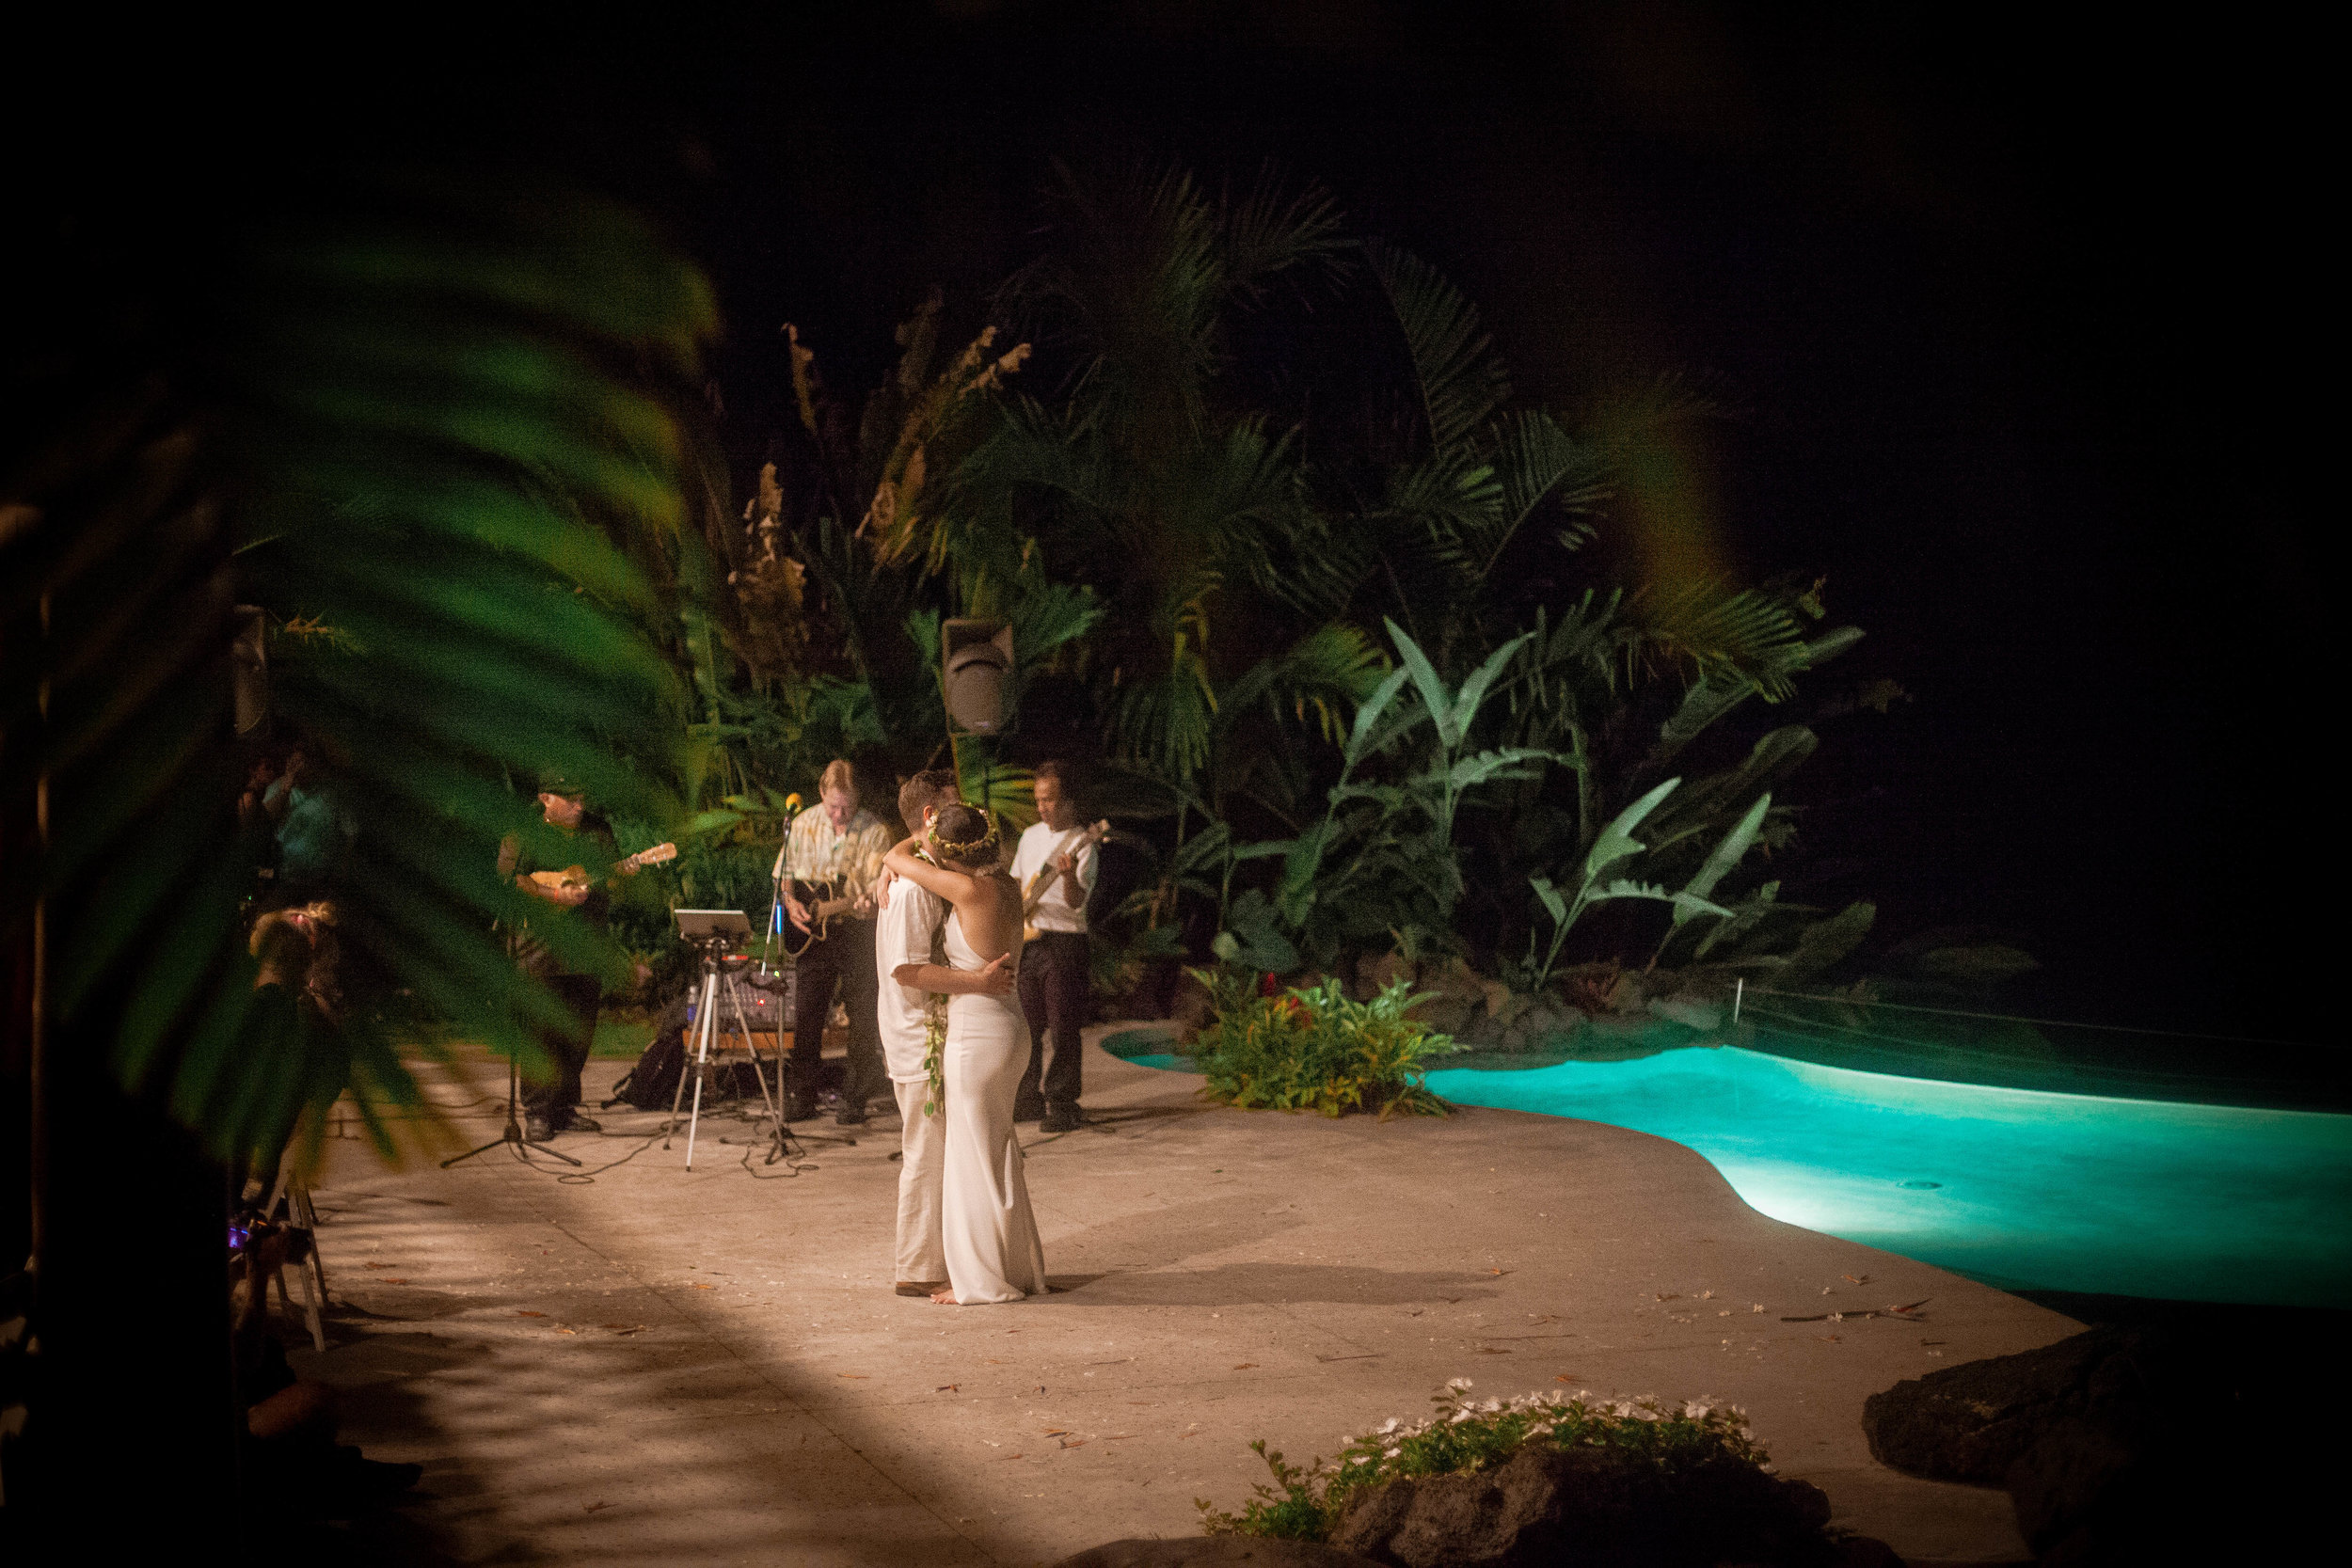 big island hawaii holualoa estate wedding 20160908215019-1kb.jpg